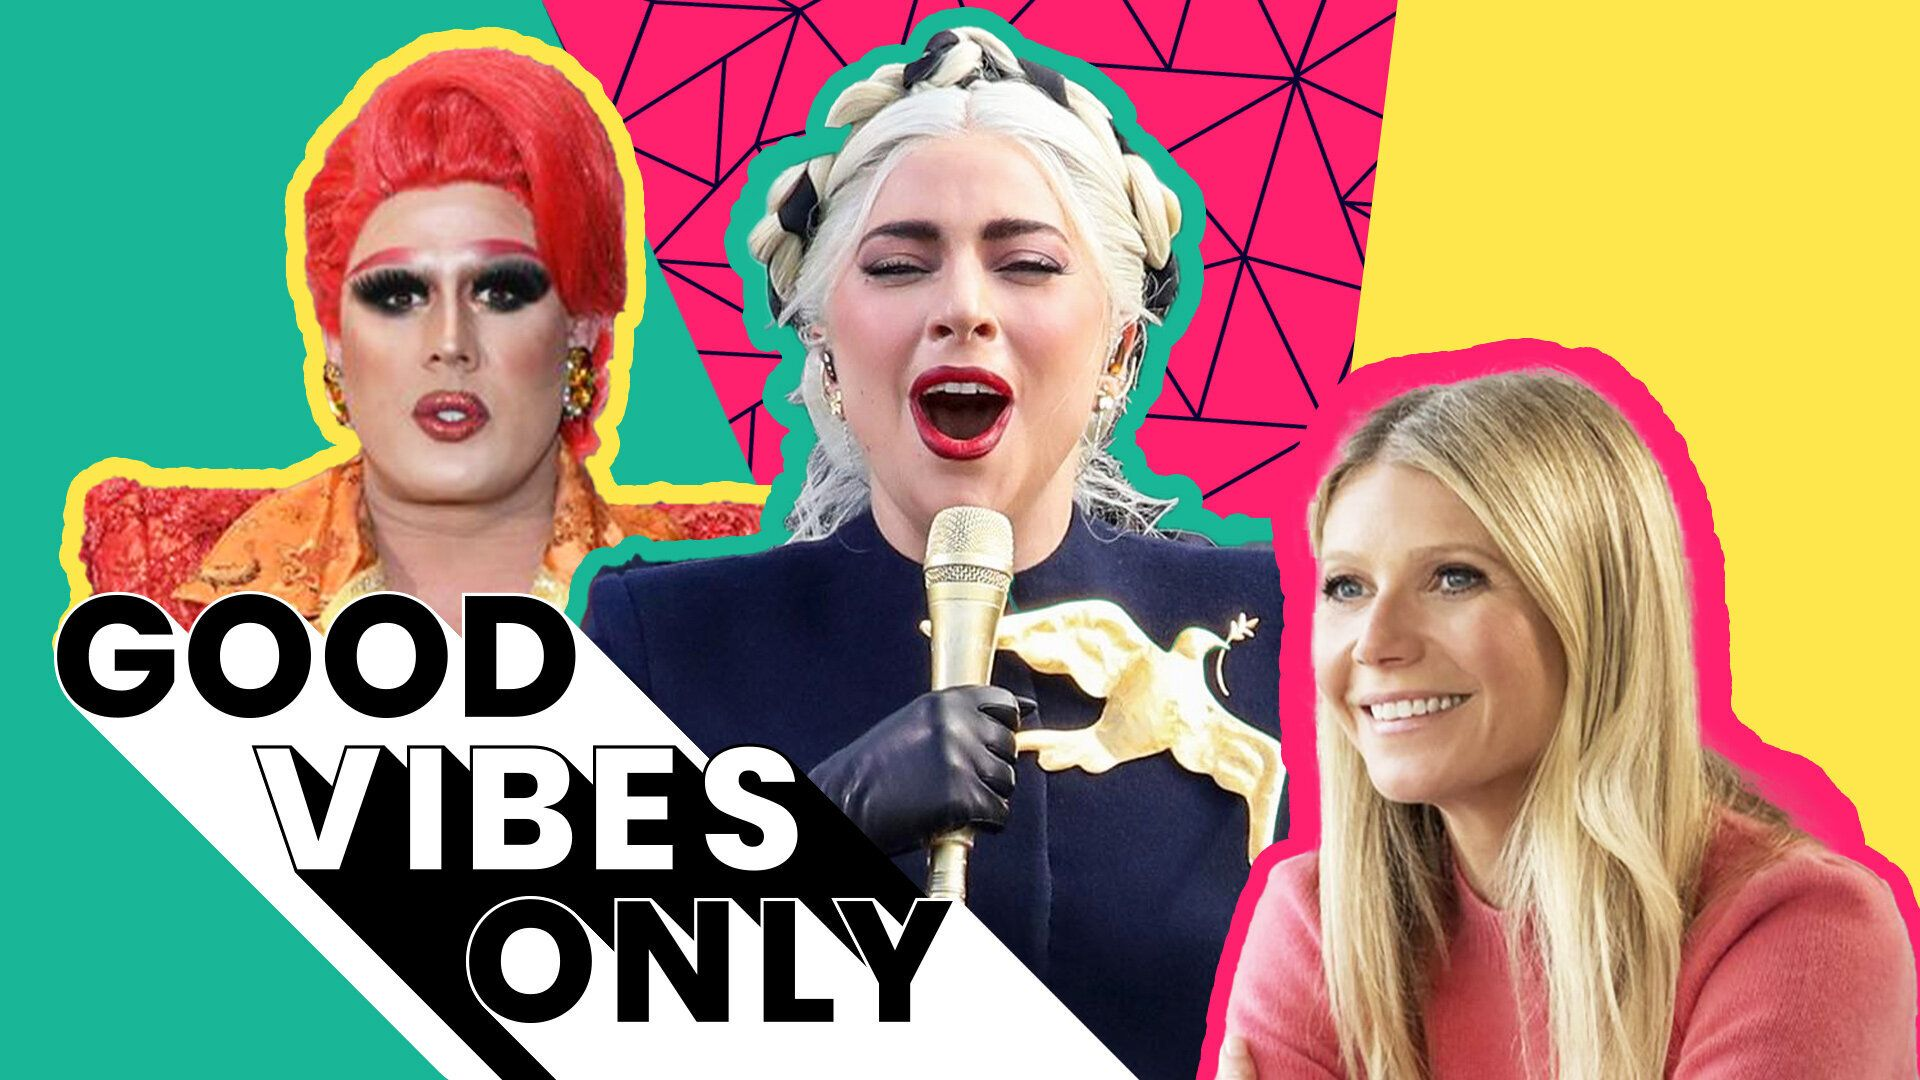 Inauguration Performances & Gwyneth Paltrow's Candle Blaze | Good Vibes Only